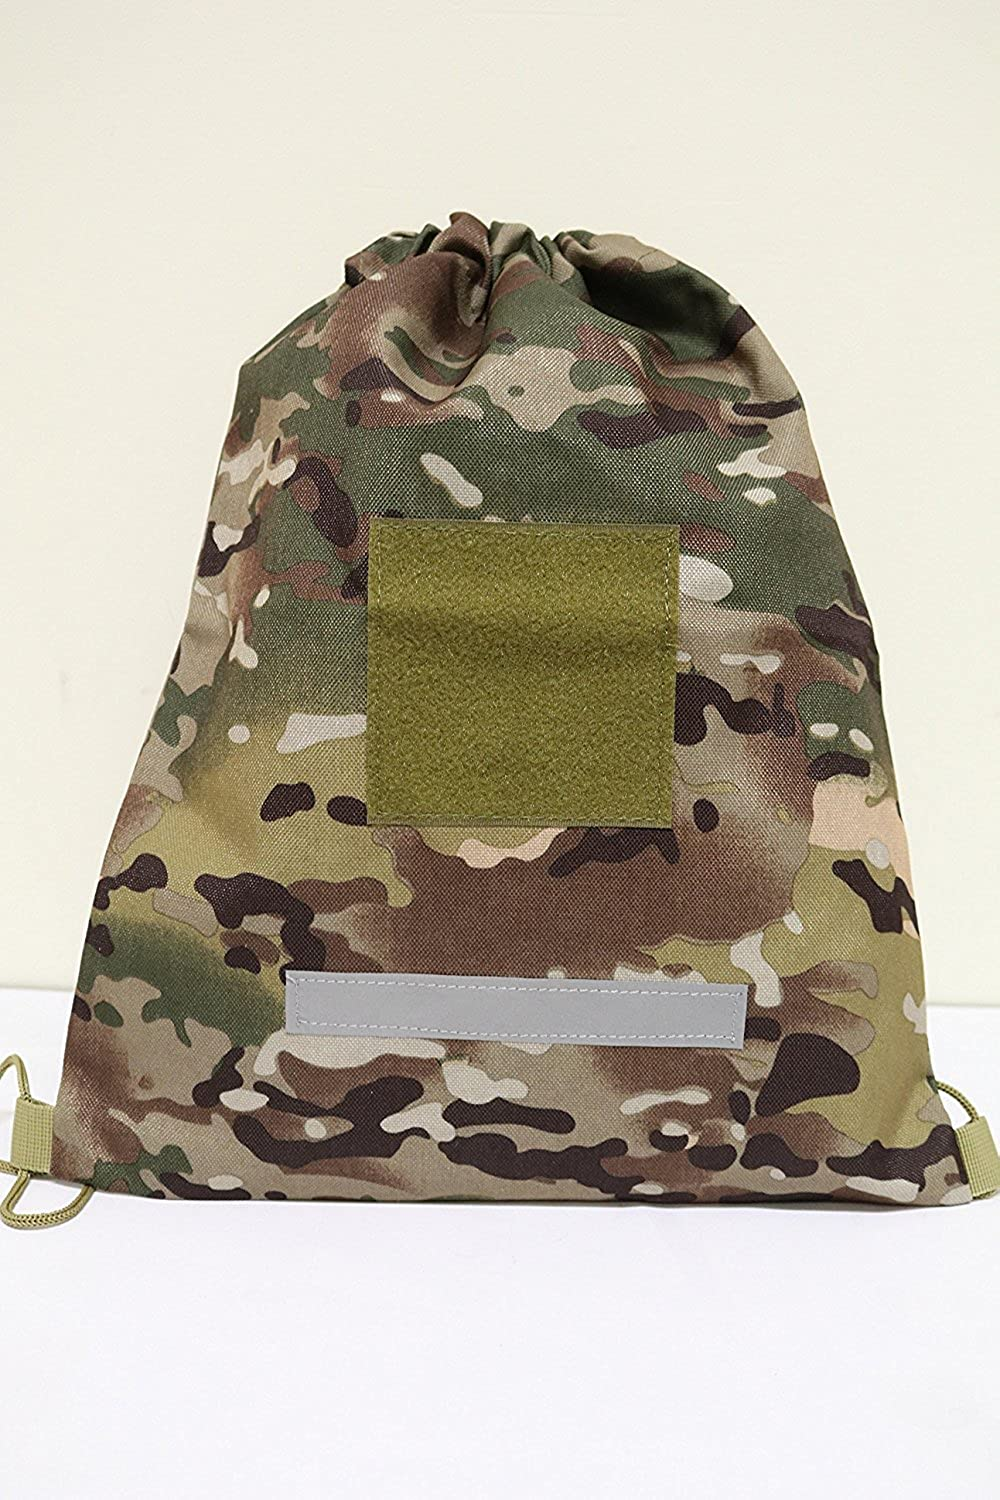 ARMYCAMO Tactical Heavy Duty Drawstring Backpack Army Military Sack 08059